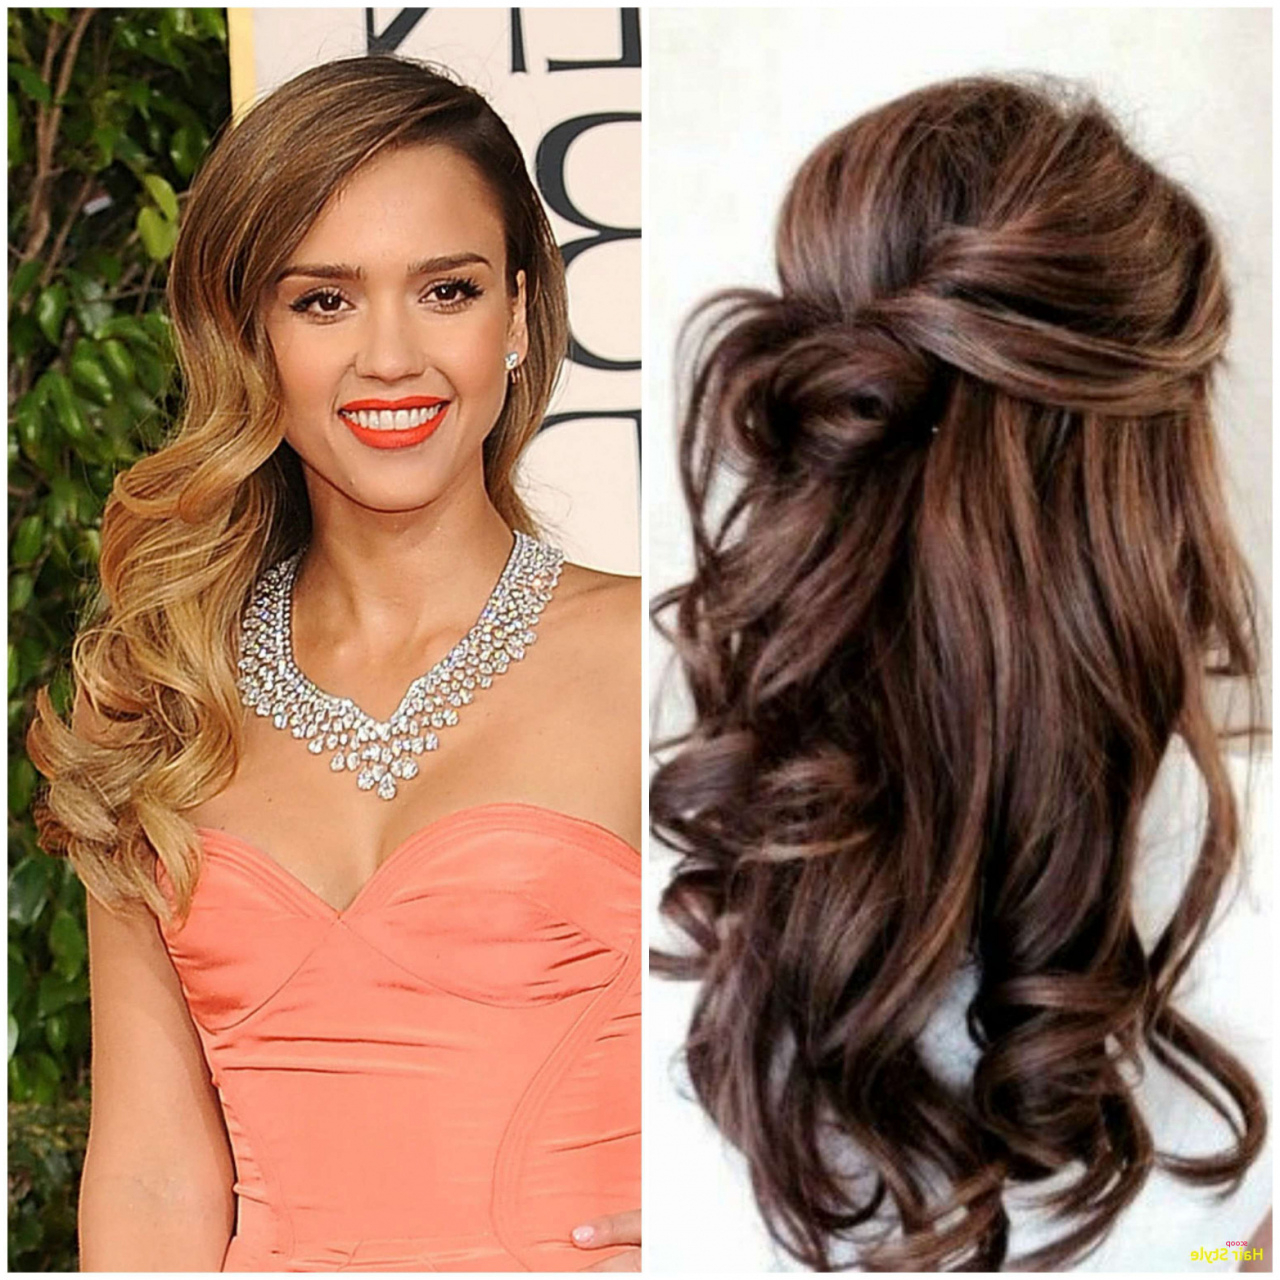 99 Special Occasion Short Hairstyles Awesome 21 Stylish 2018 Womens Pertaining To Short Hairstyles For Special Occasions (View 23 of 25)